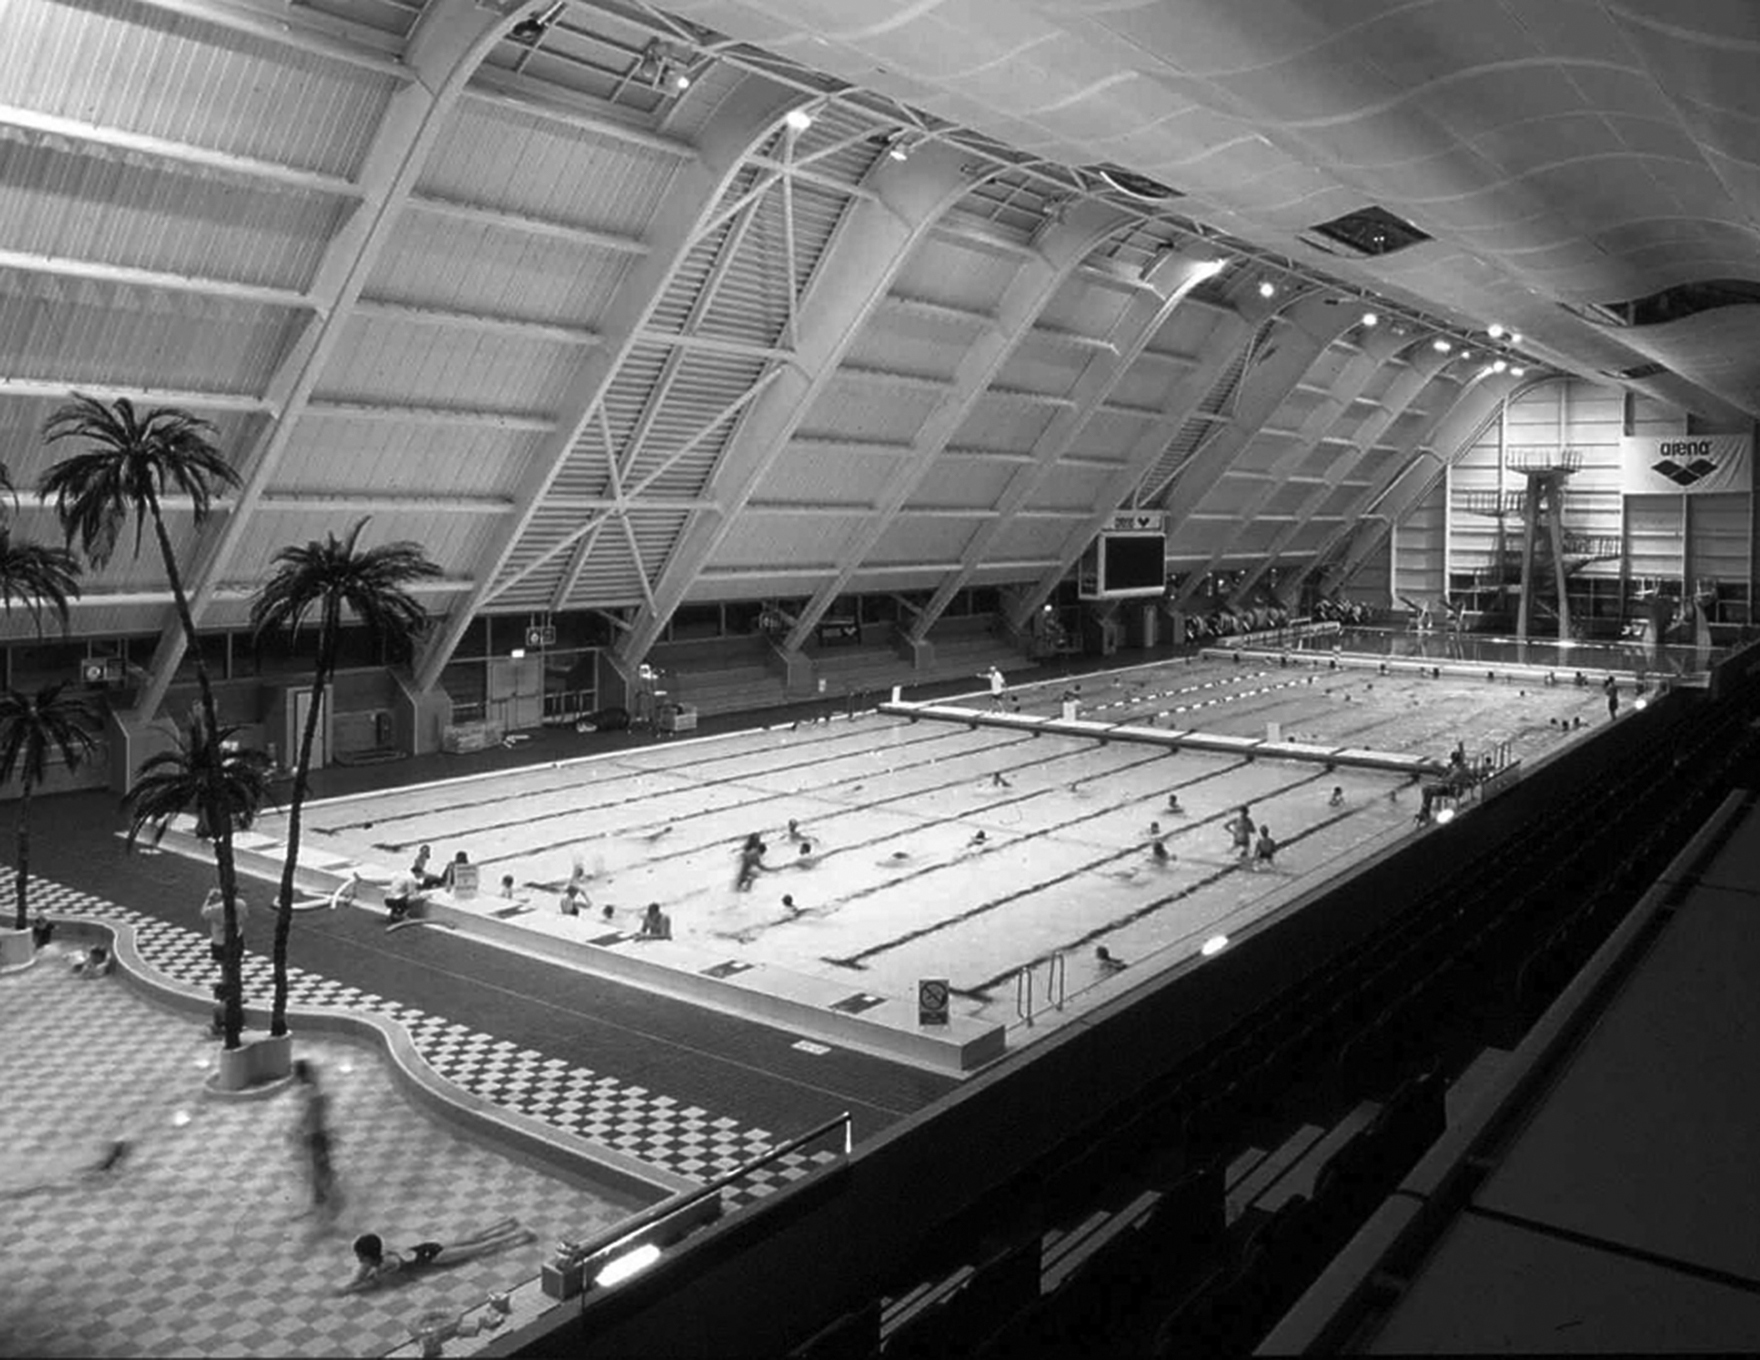 50M Pool Design Expertise Manchester Aquatics Centre Leisure Water L